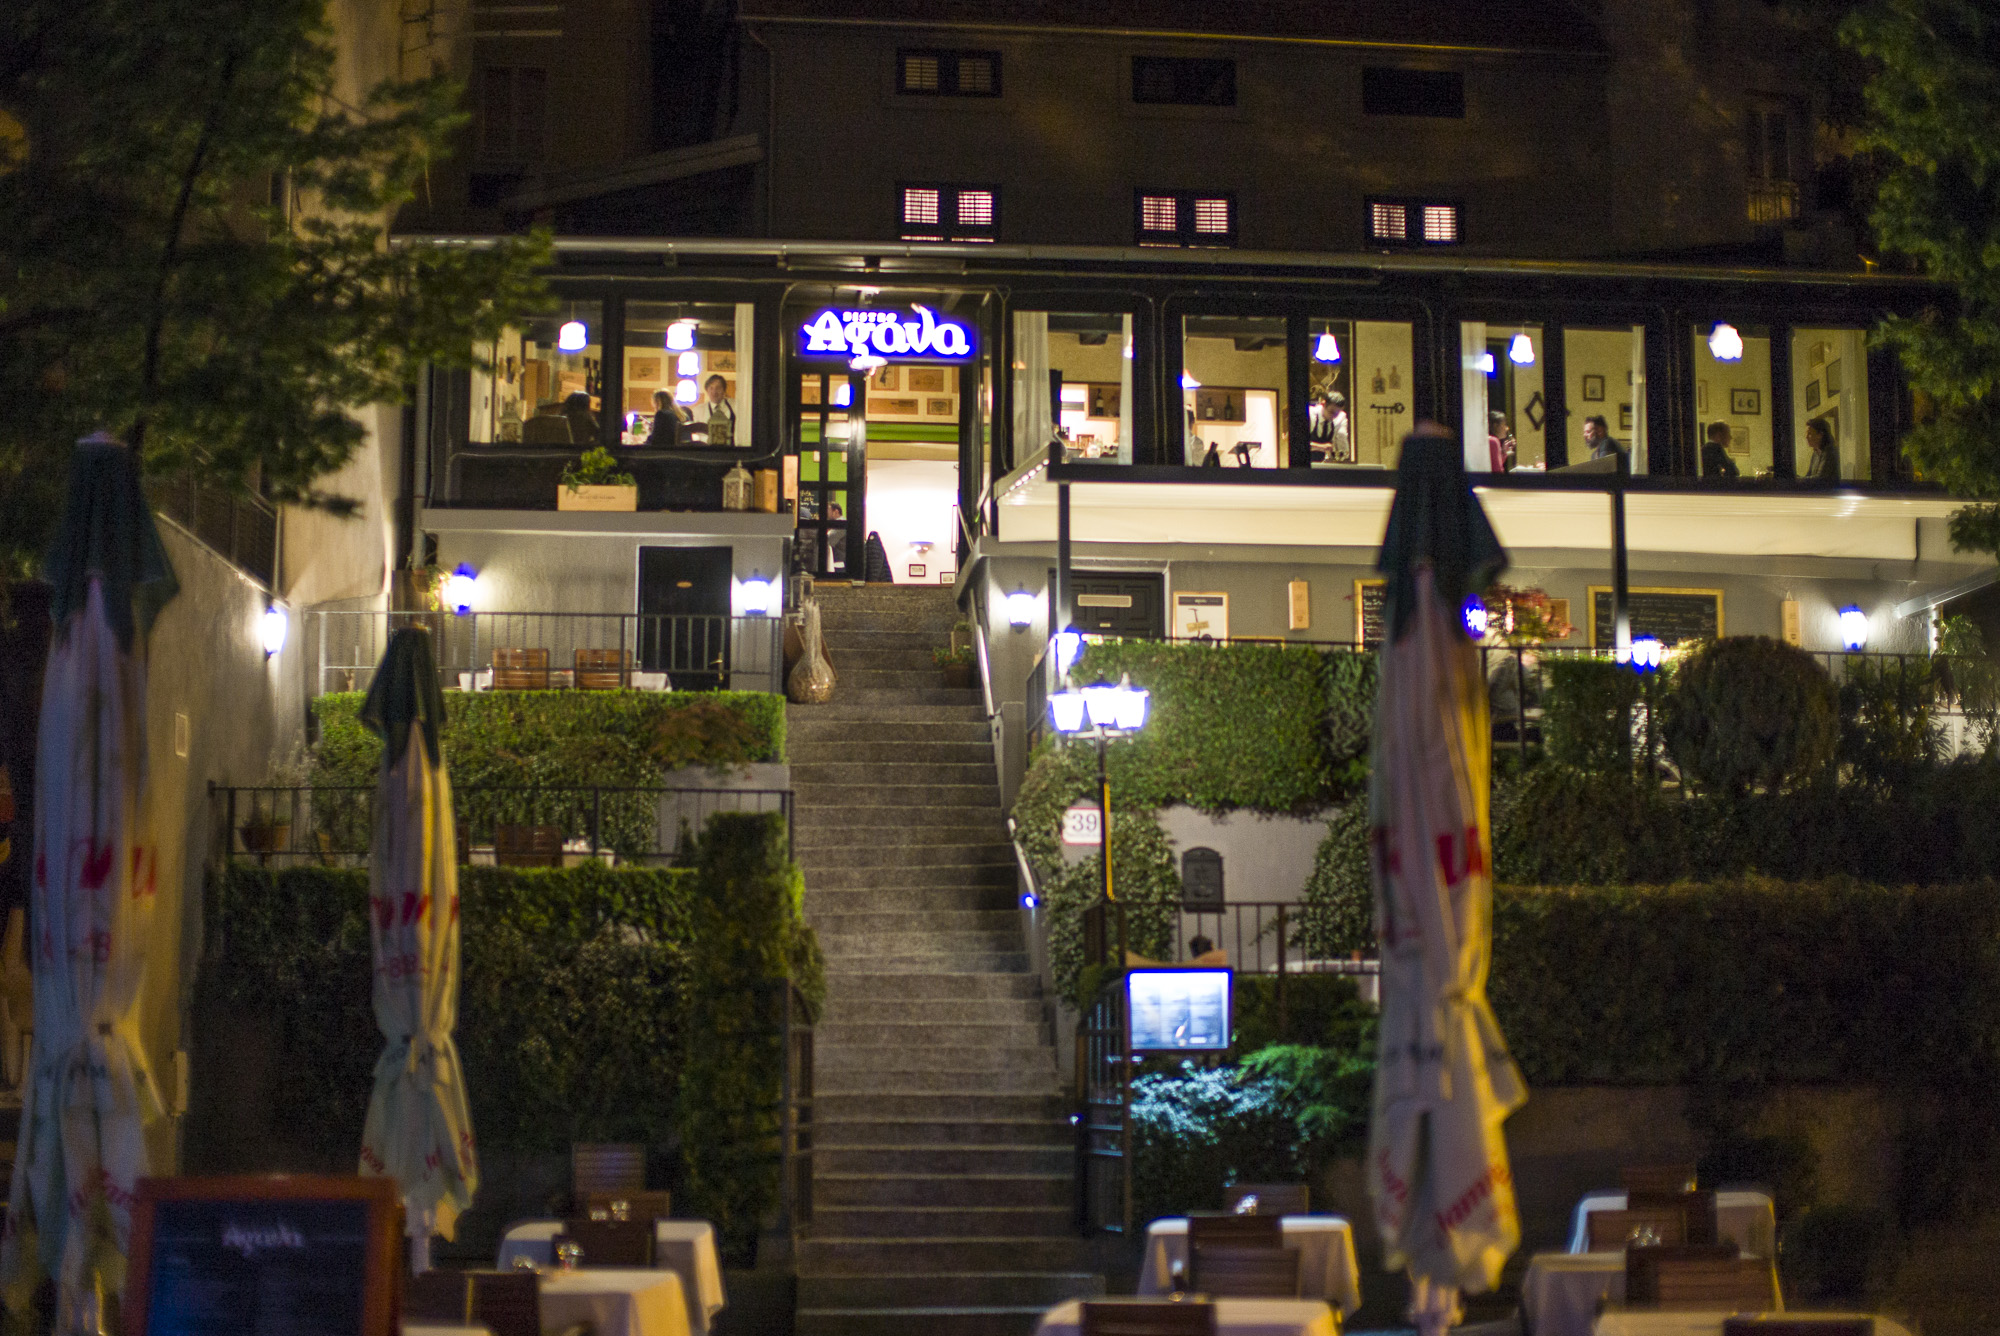 Bistro Agava offers outdoor seating on several terraces